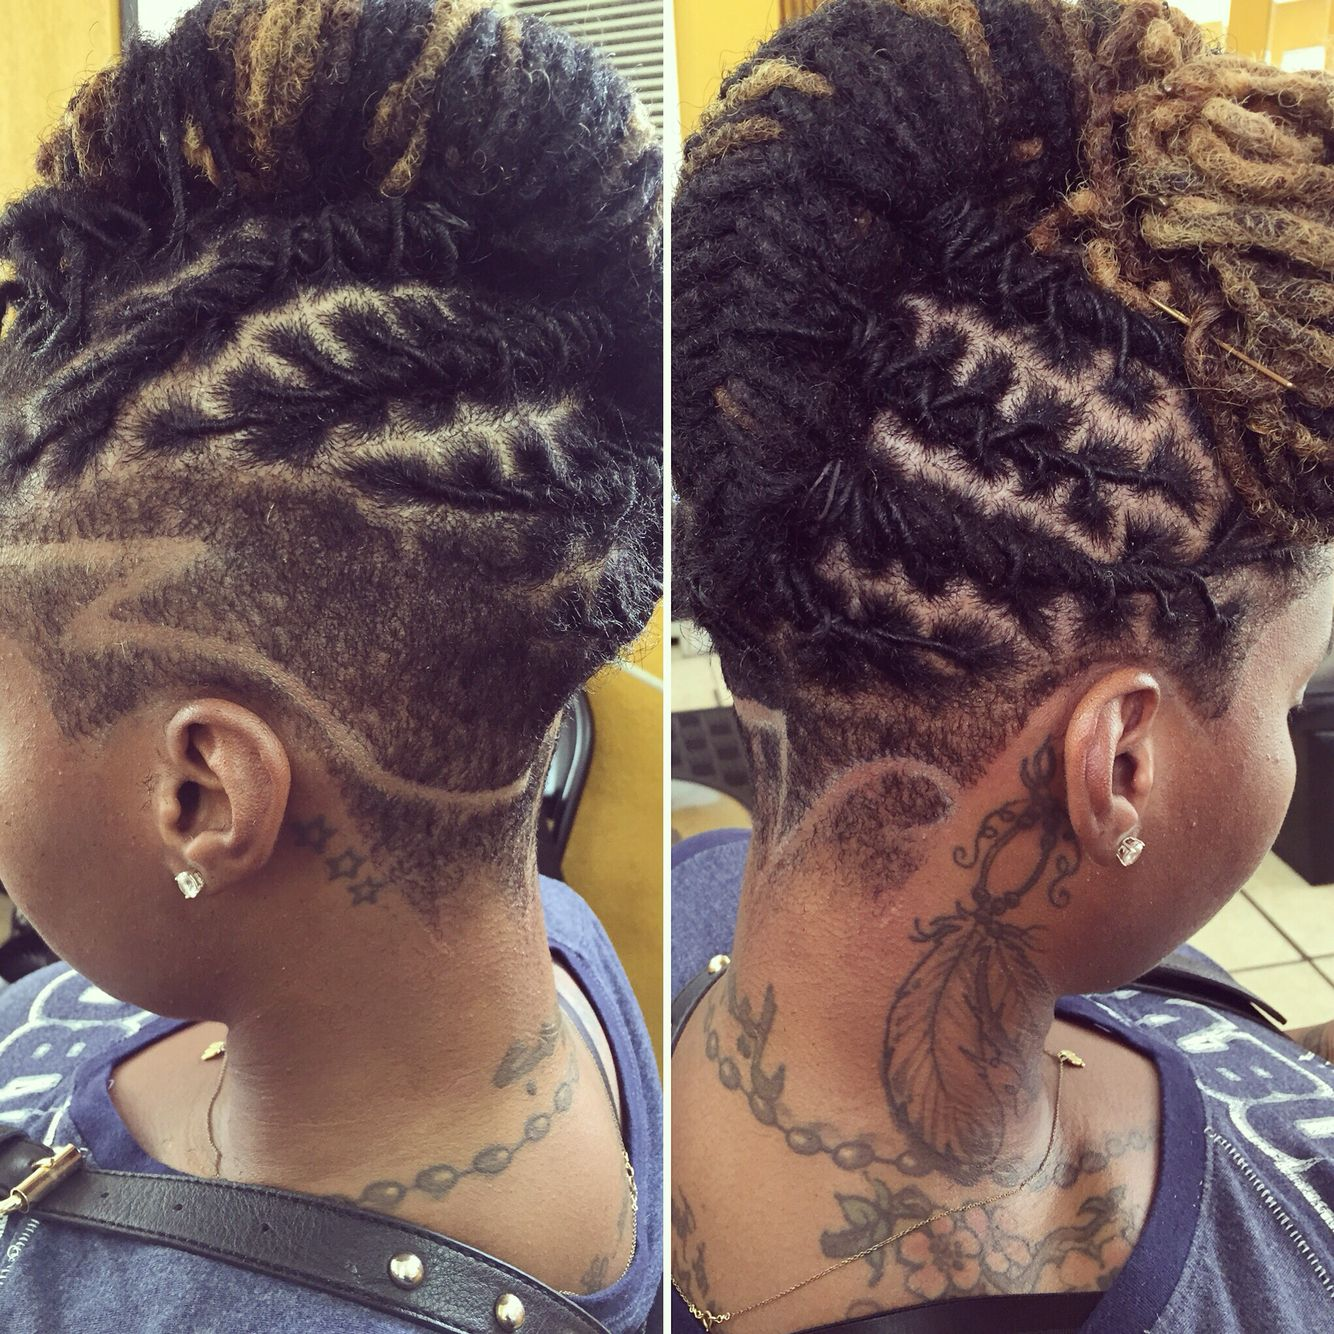 Locstyles shavedside haircutdesign womenwithlocs blondelocs